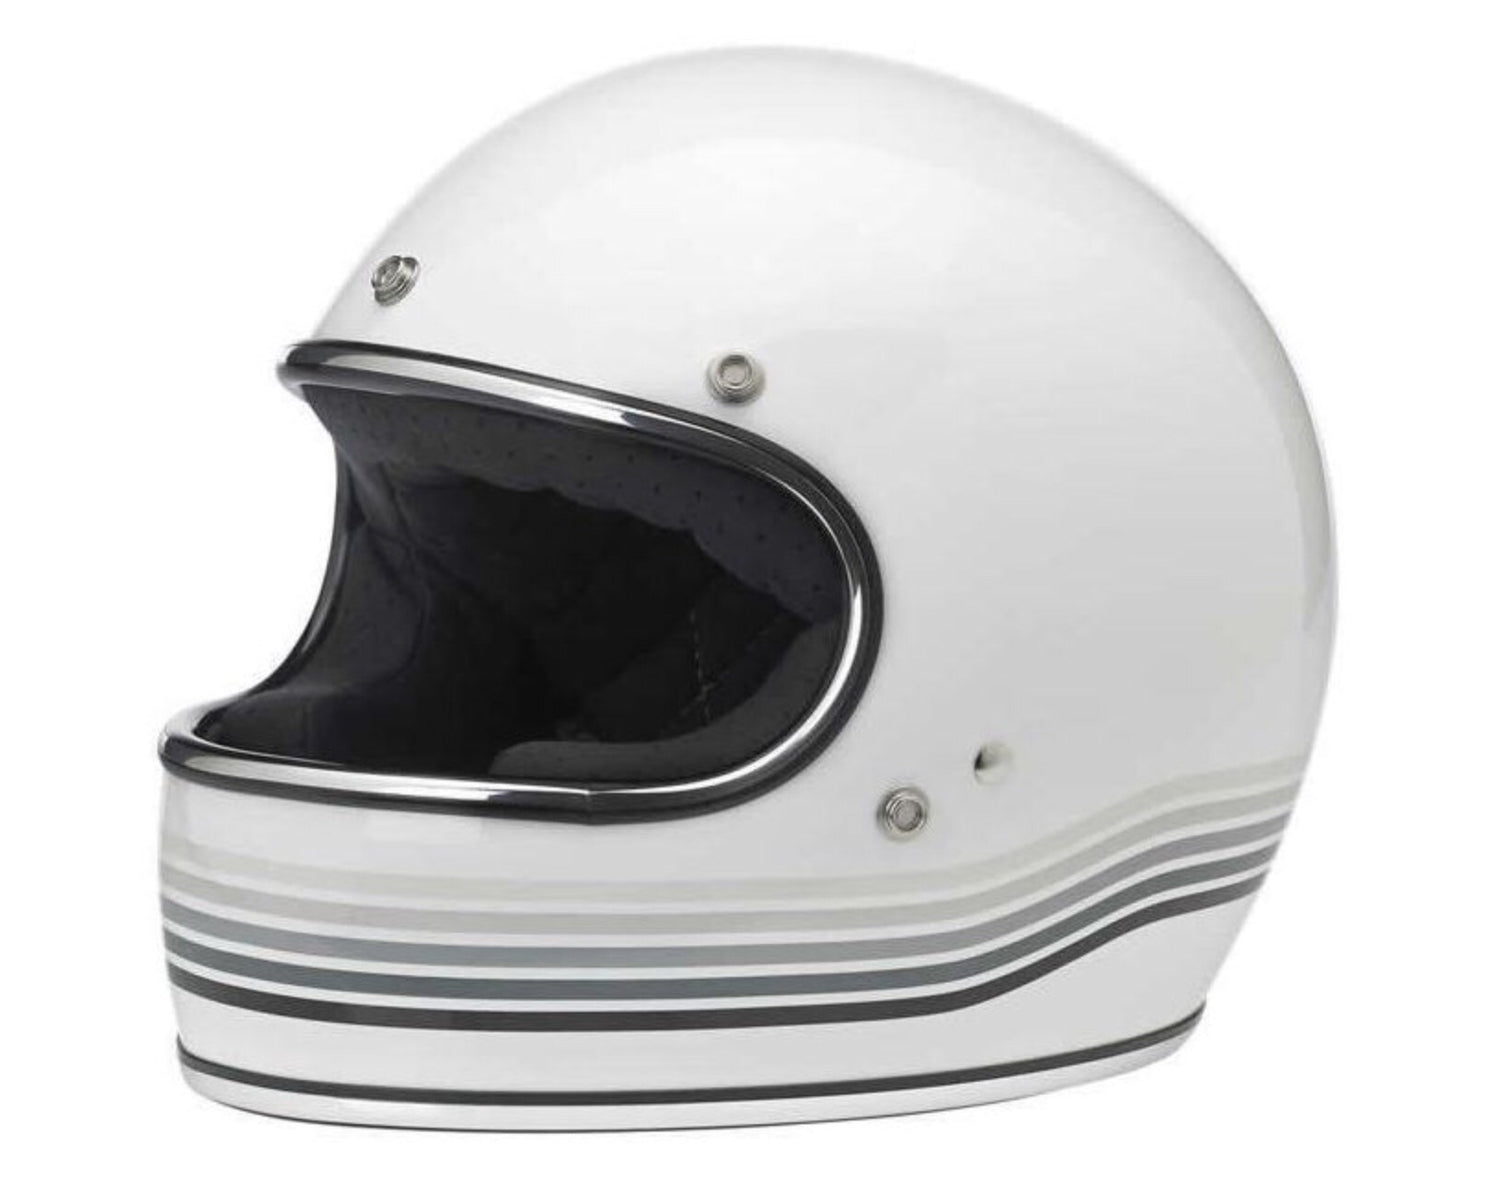 Gringo Helmet - Spectrum Gloss White